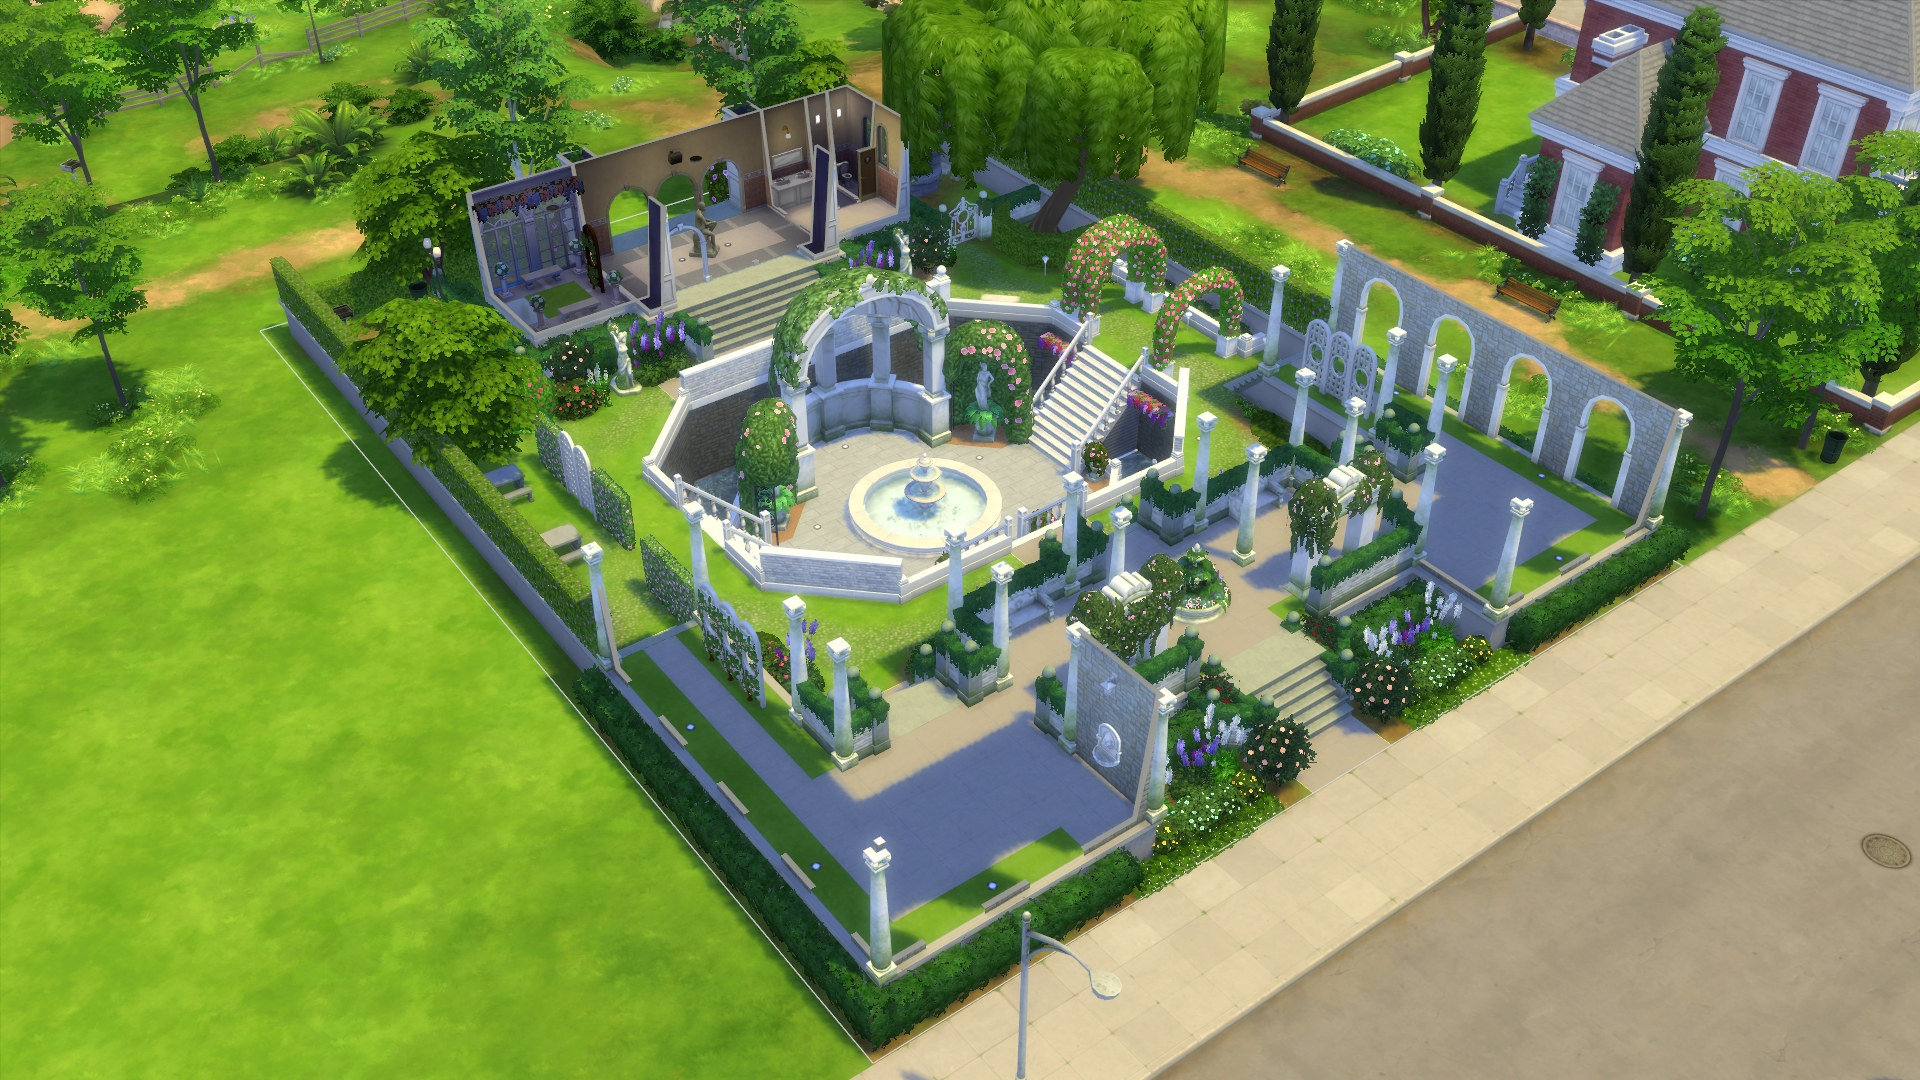 The sims 4 movie hangout stuff pack review for Garden design sims 4